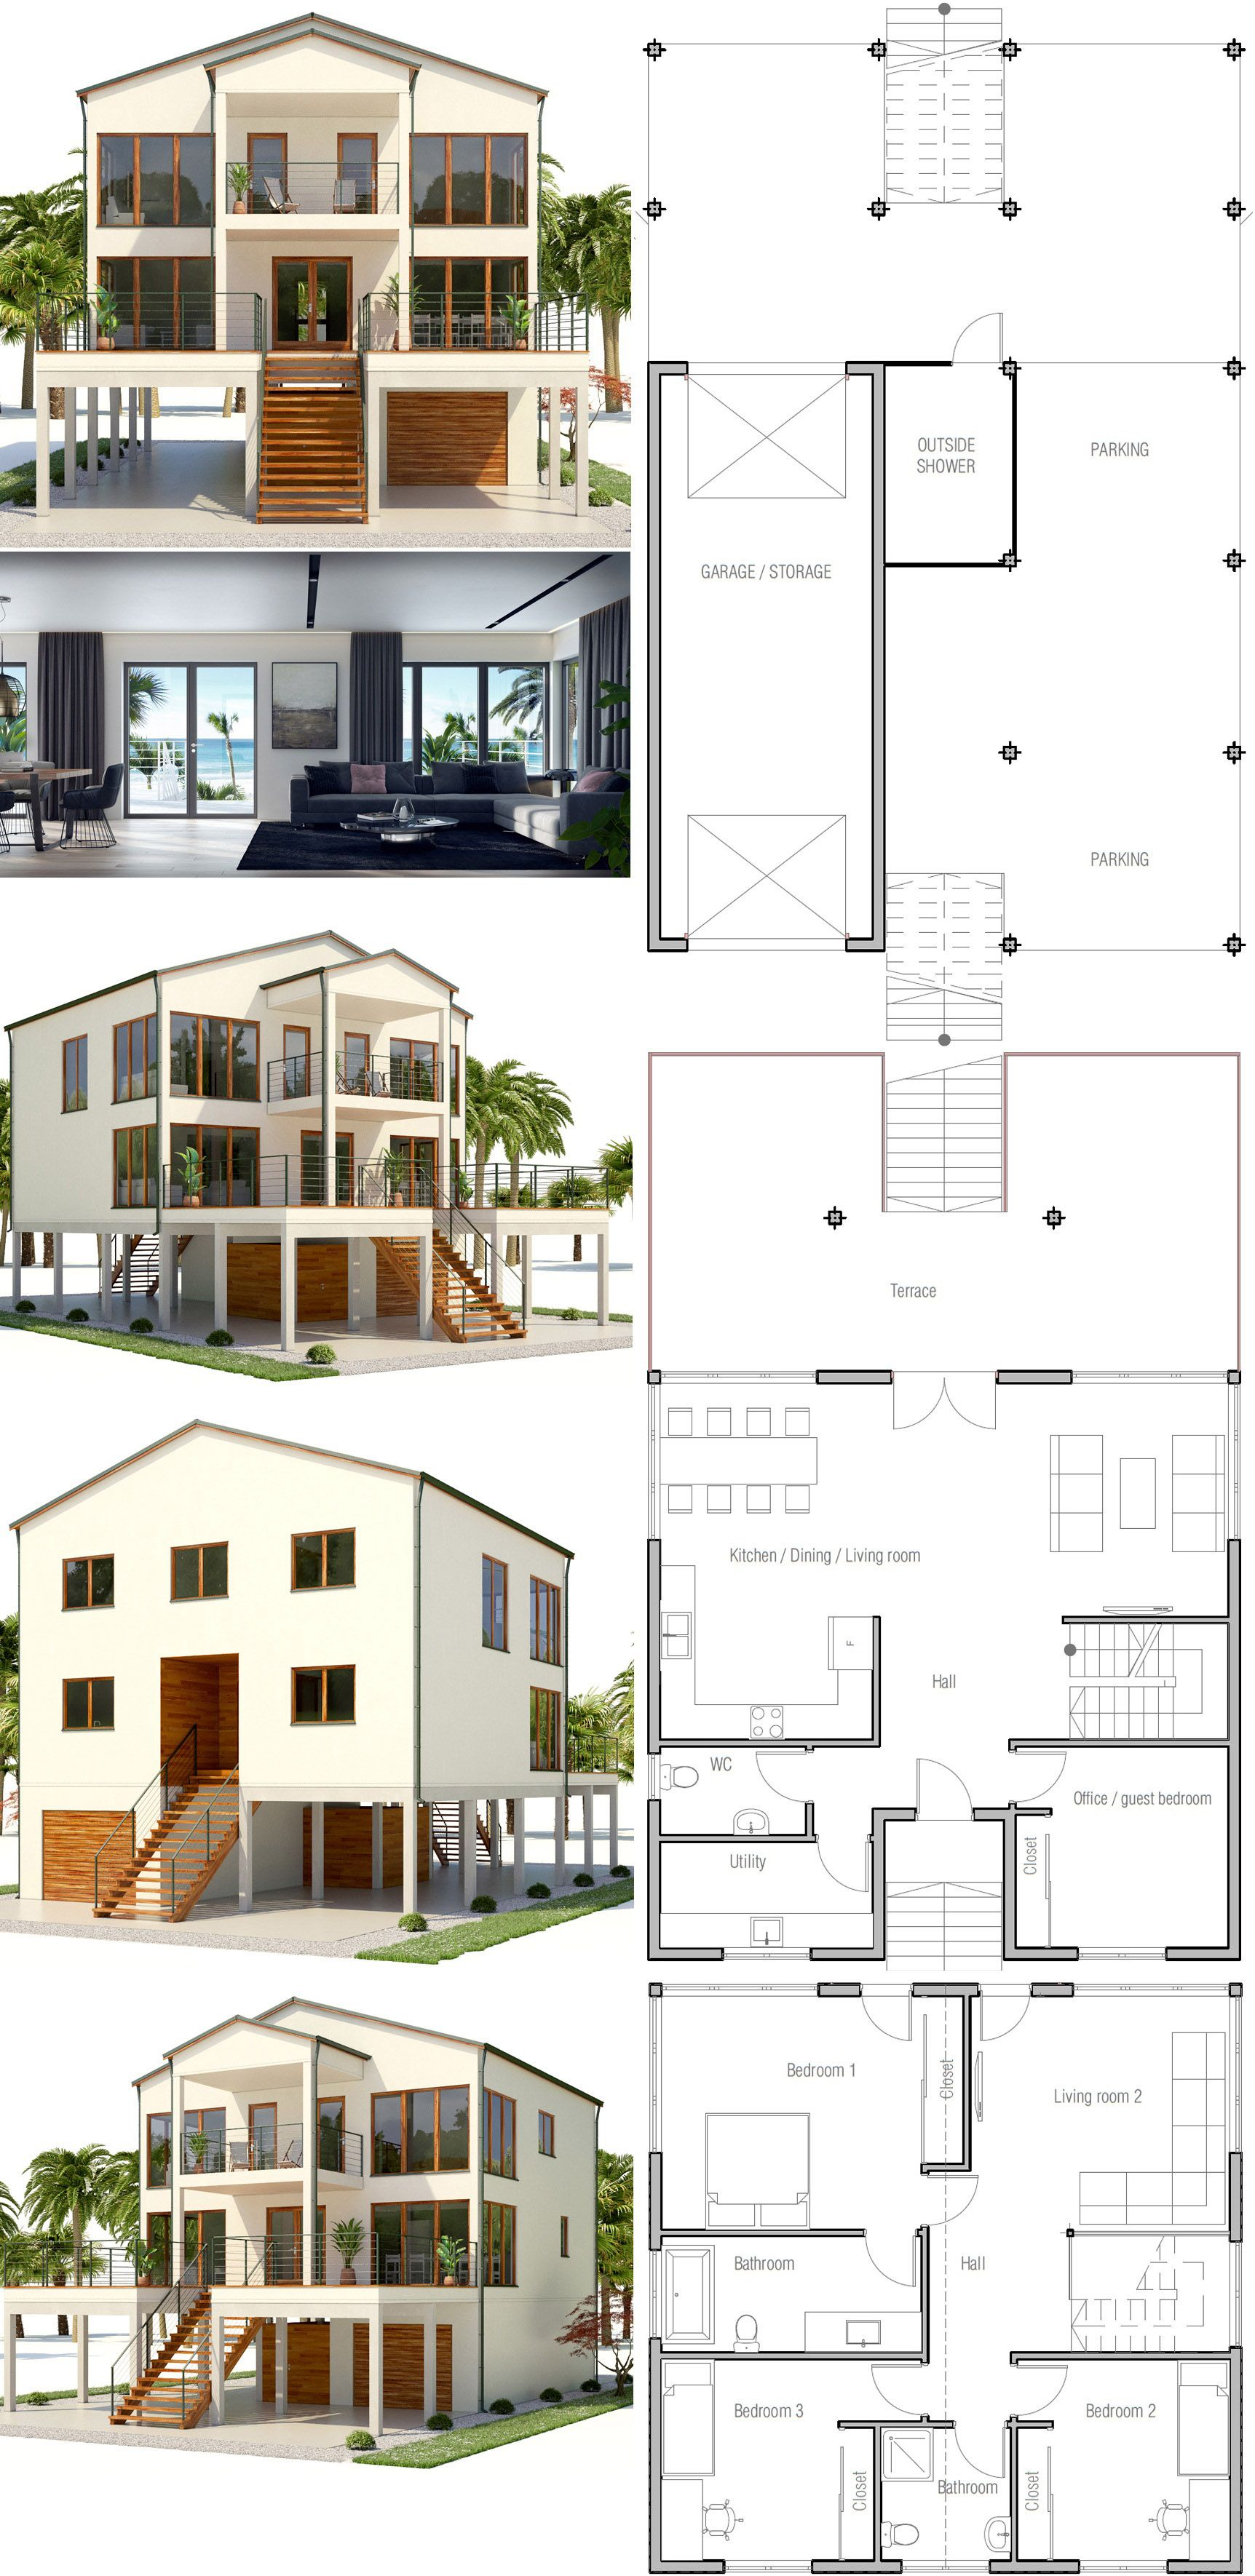 House Plans U0026 Home Plans | House Plans U0026 House Designs. Plan De Maison